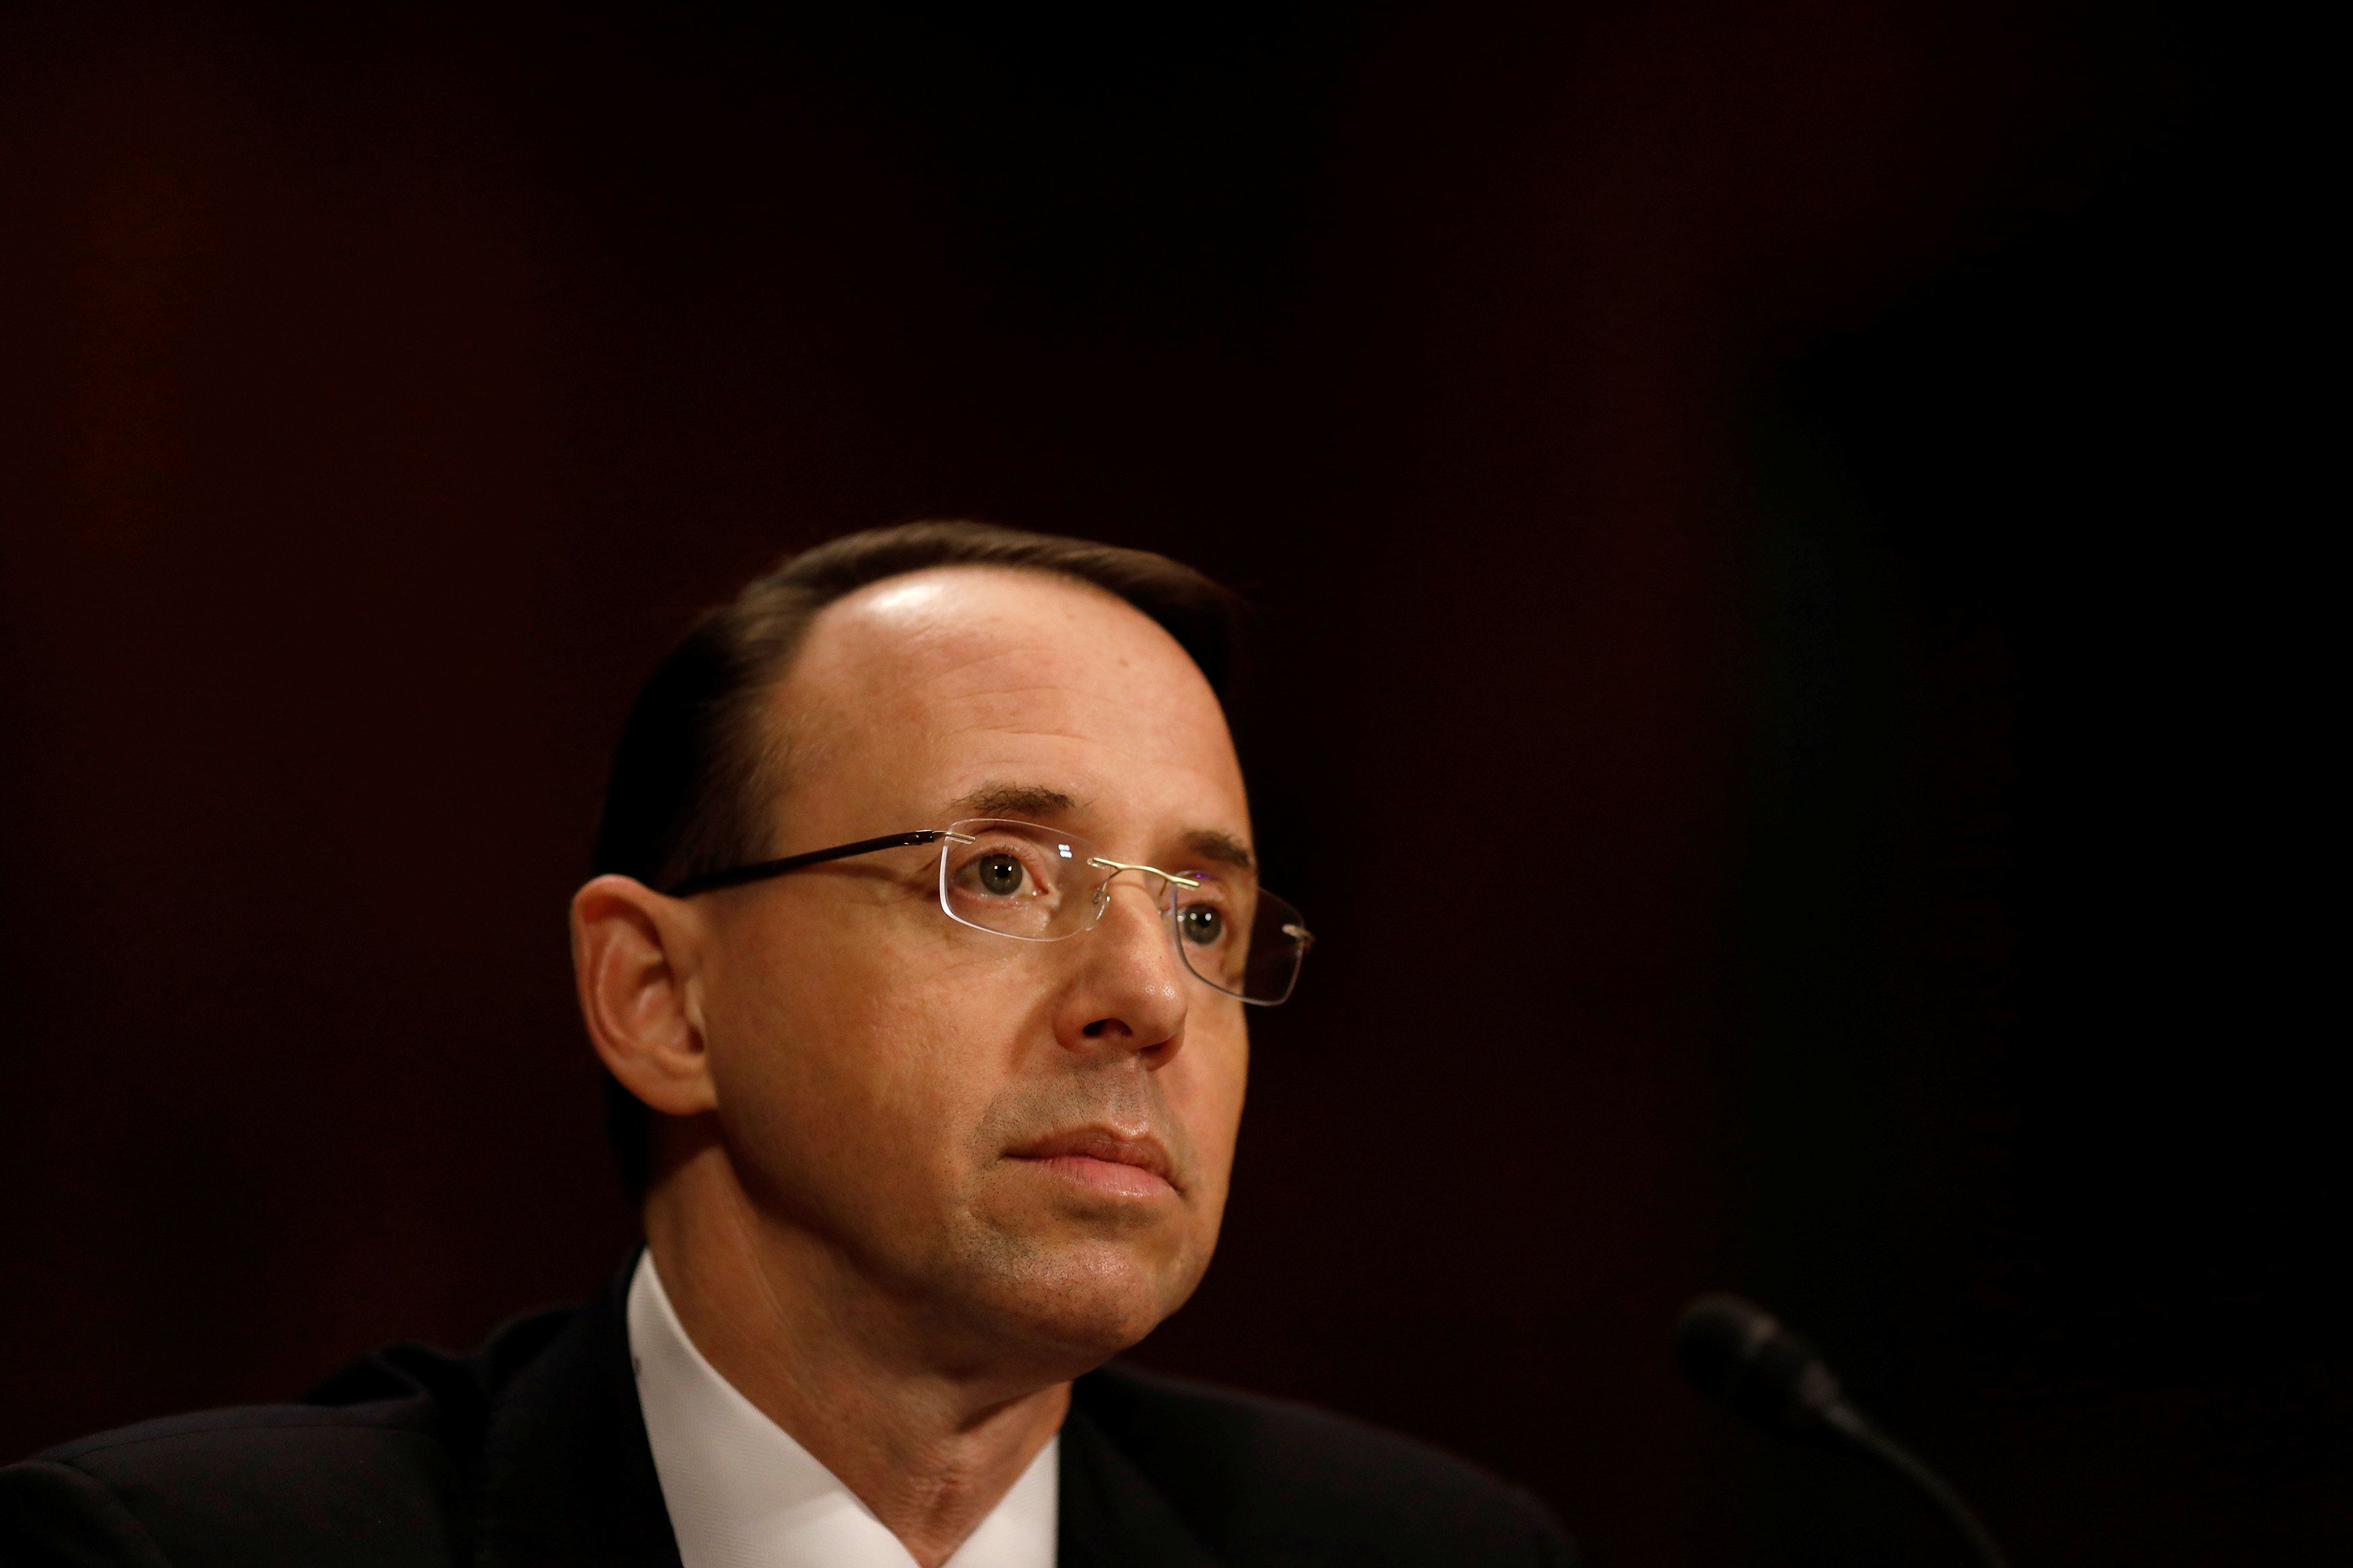 U.S. Department Of Justice Launches Inquiry To Probe Russia